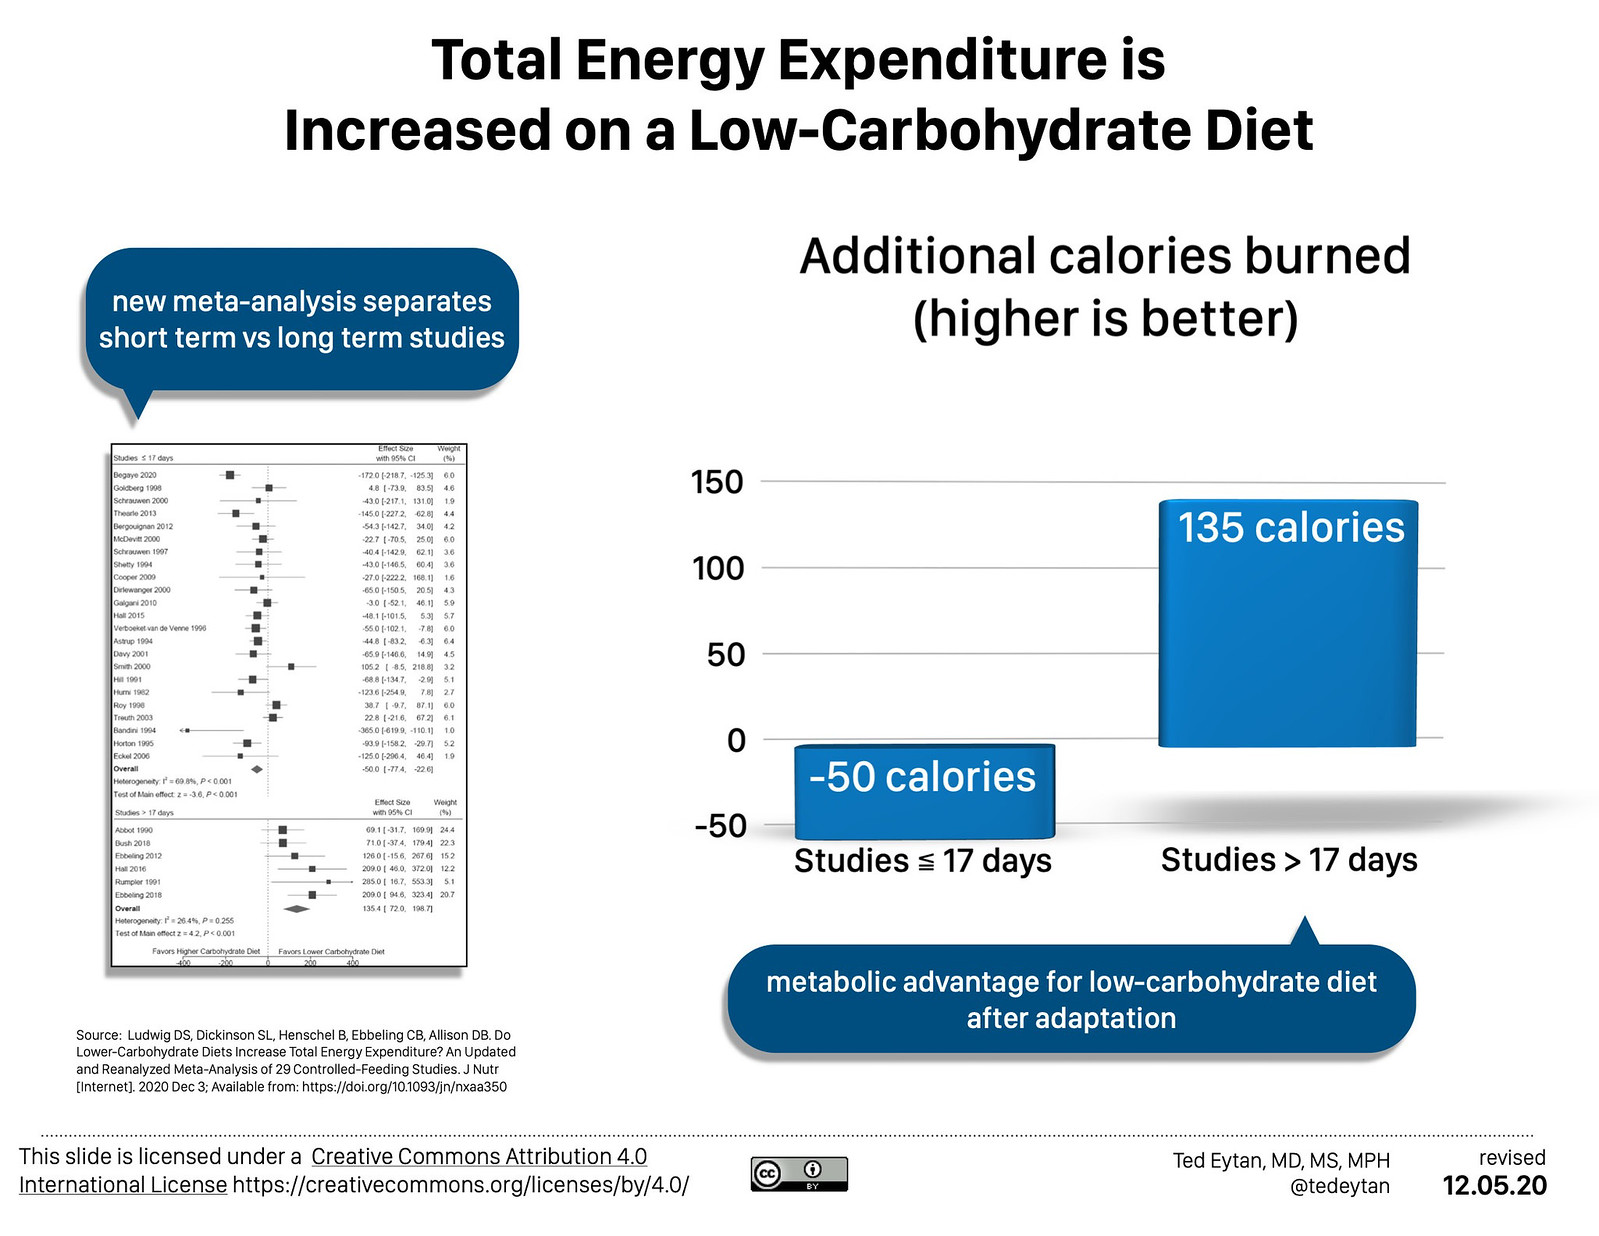 2018.05 Low Carb and Low Carbon - Ted Eytan MD-1001 1021